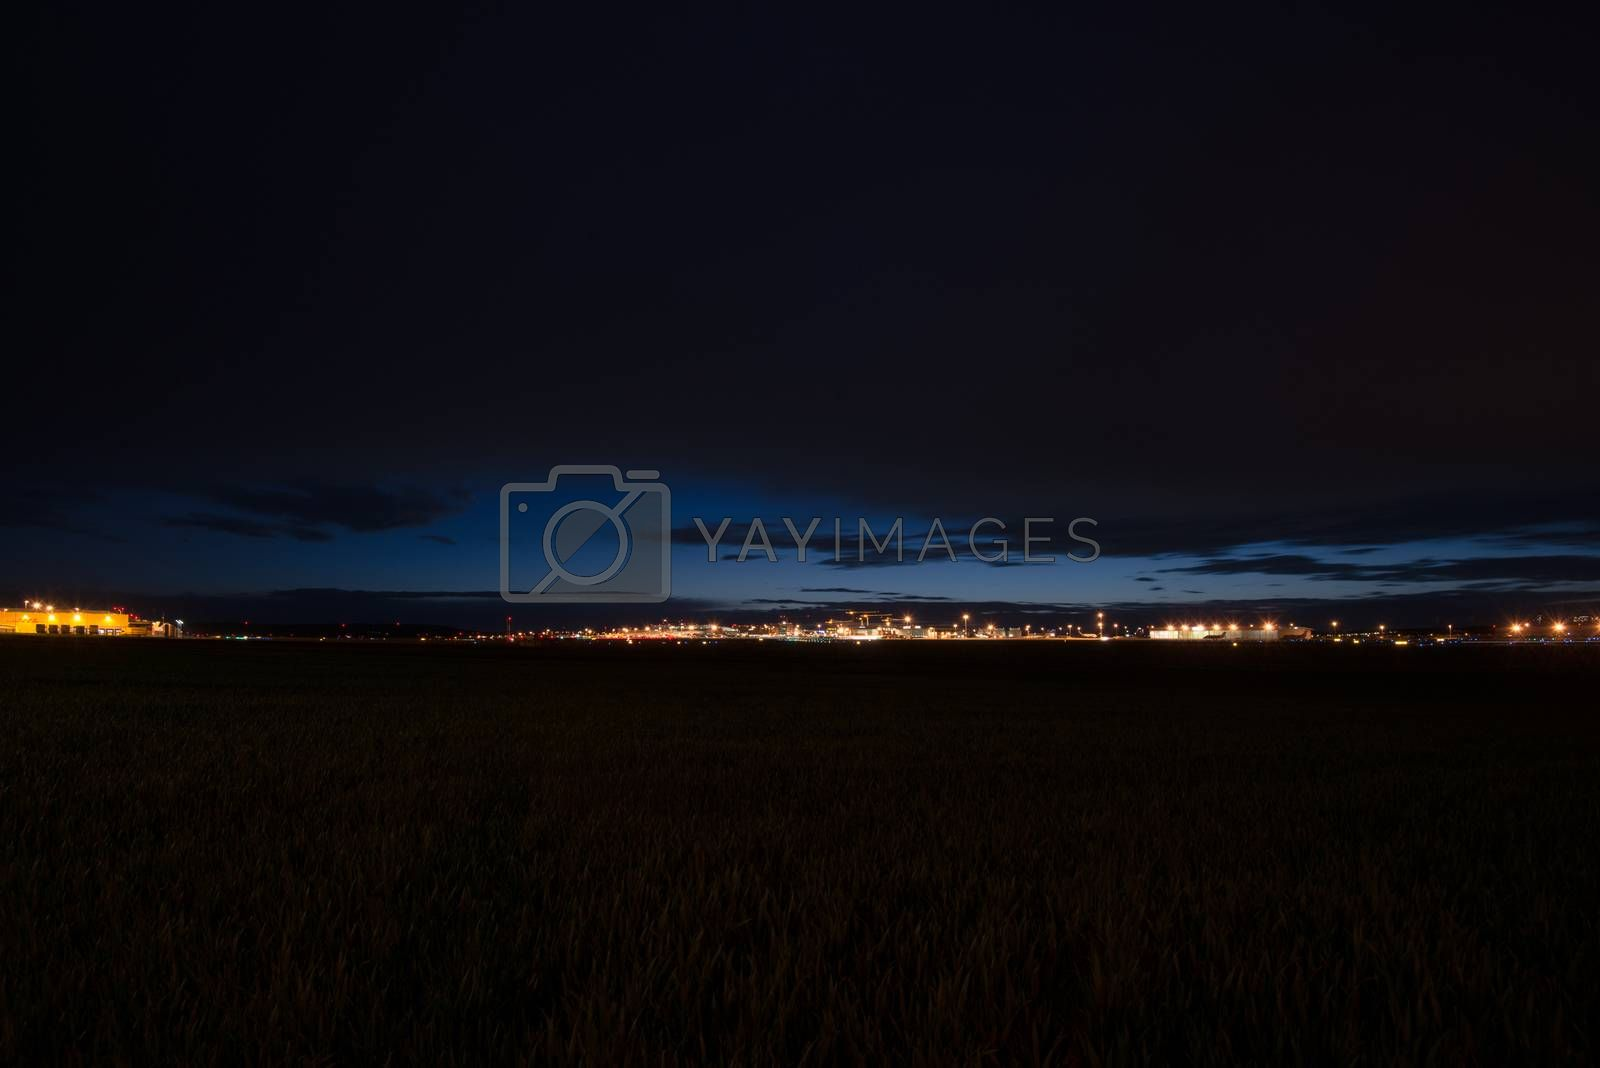 STUTTGART, GERMANY - MAY 6, 2014: Extreme wide angle shot of Stuttgart Airport at dusk with planes departing and arriving as seen from over the fields on May, 6, 2014 in Stuttgart, Germany. Stuttgart Airport is the 6th biggest airport in Germany, having a capacity of 14 million people per year.